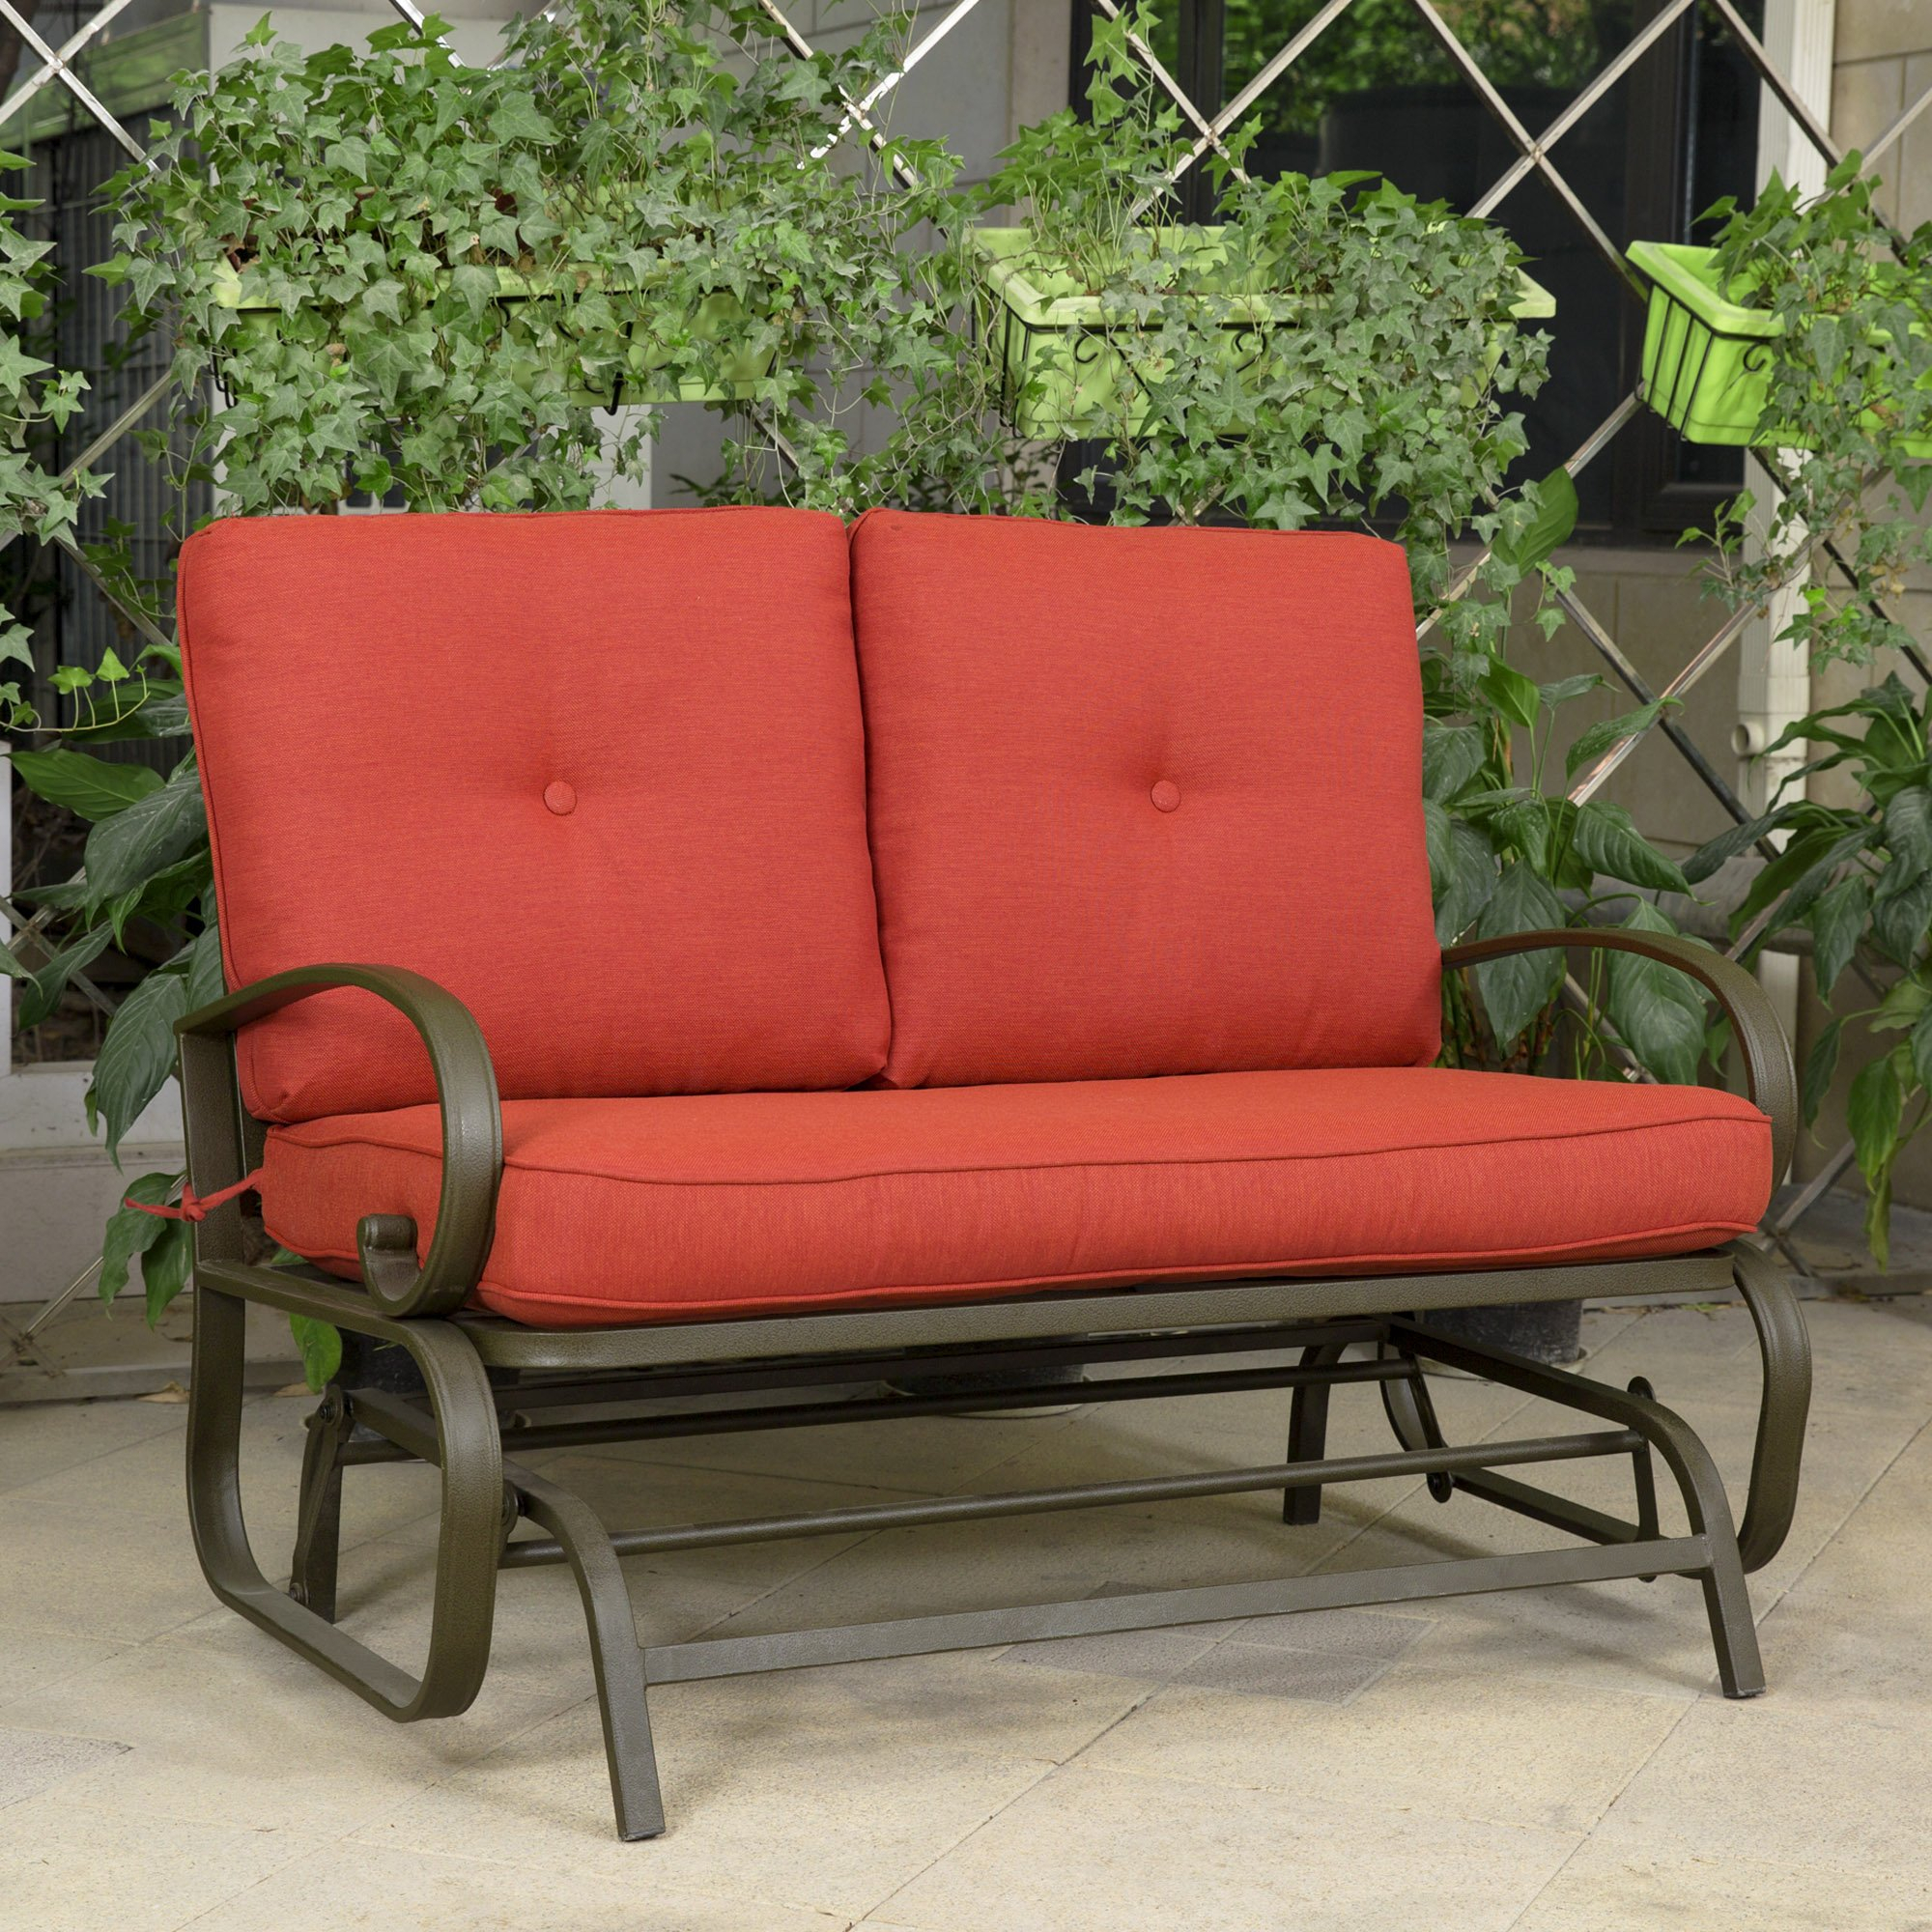 Buy Outdoor Patio Leisure Swing Rocker Glider Bench Loveseat Intended For Outdoor Steel Patio Swing Glider Benches (View 18 of 25)